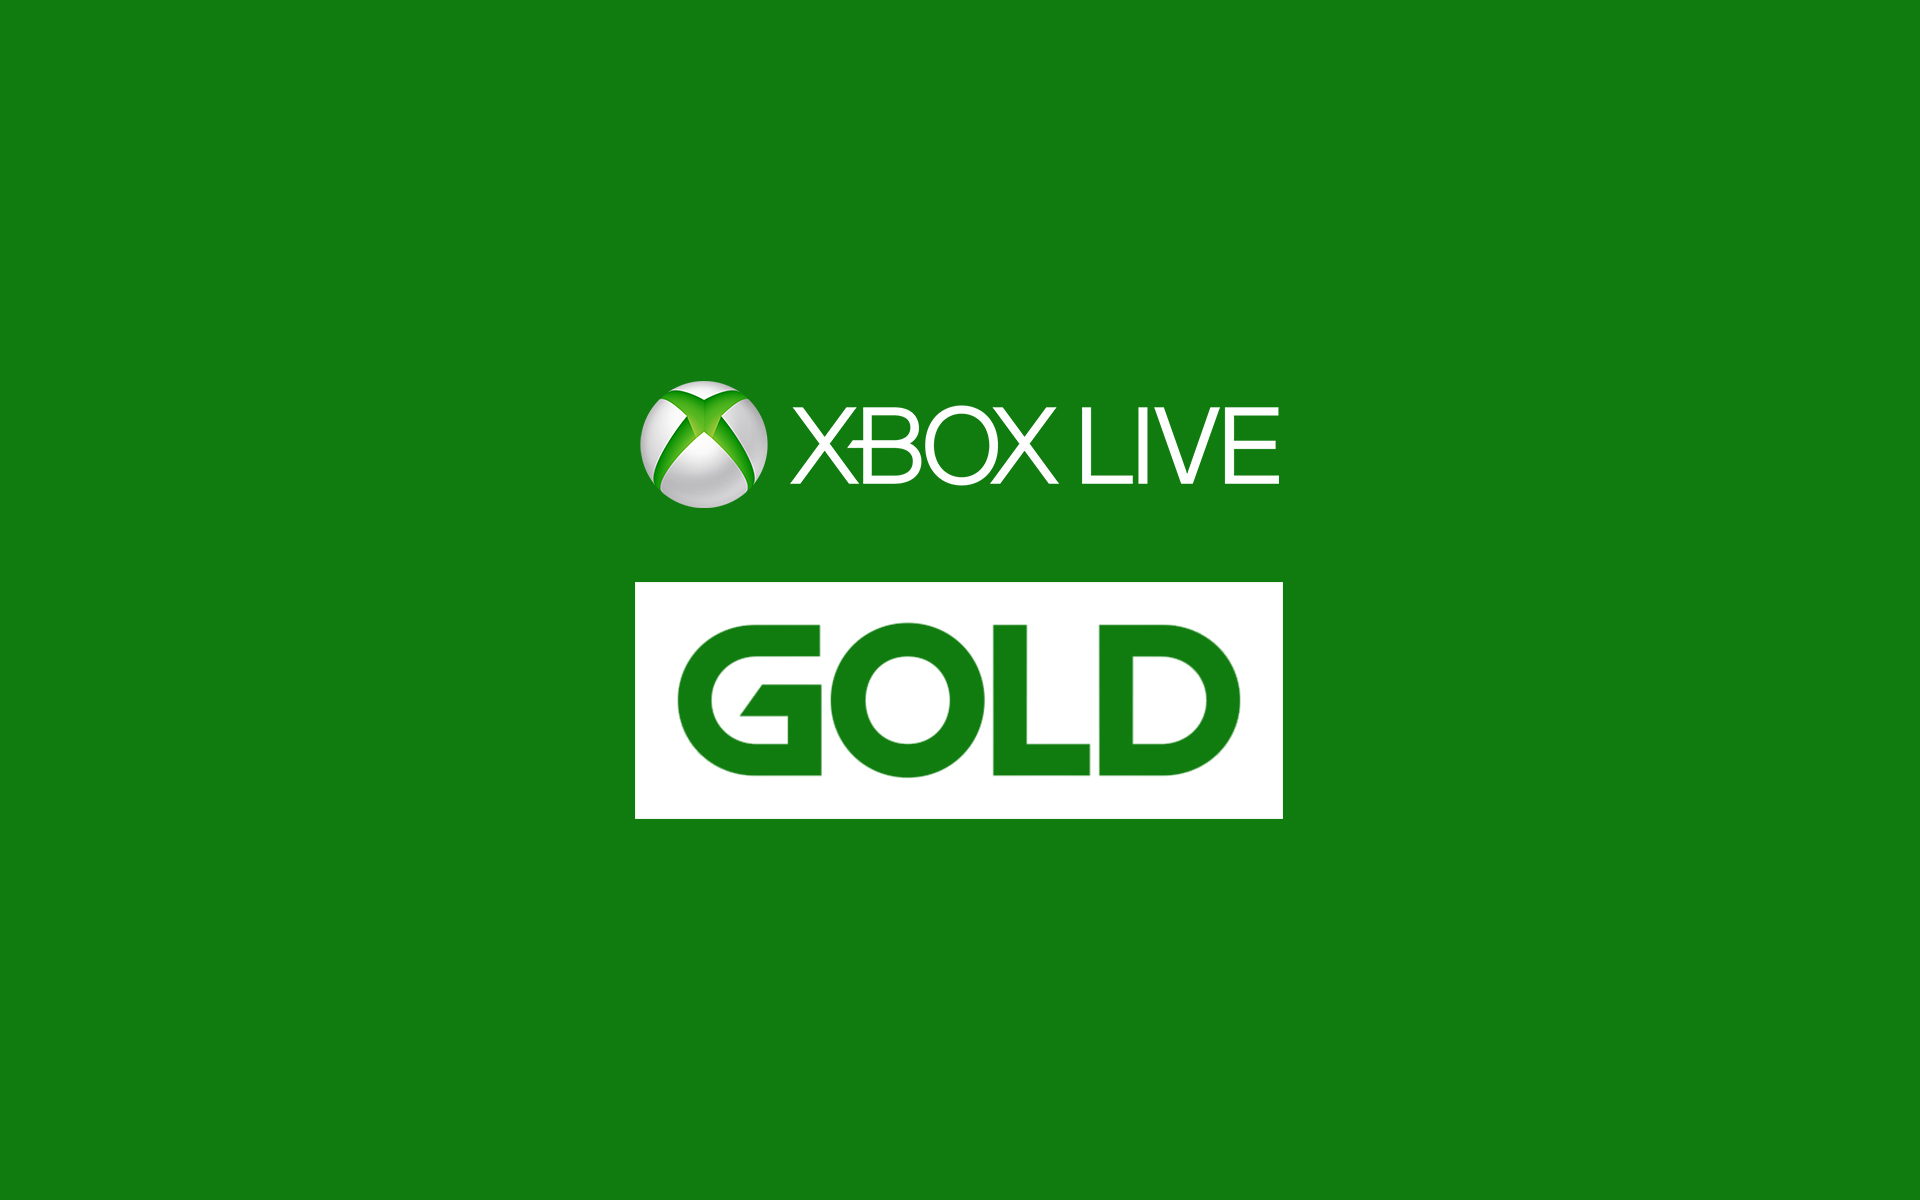 12 Meses - Xbox Live Gold cover